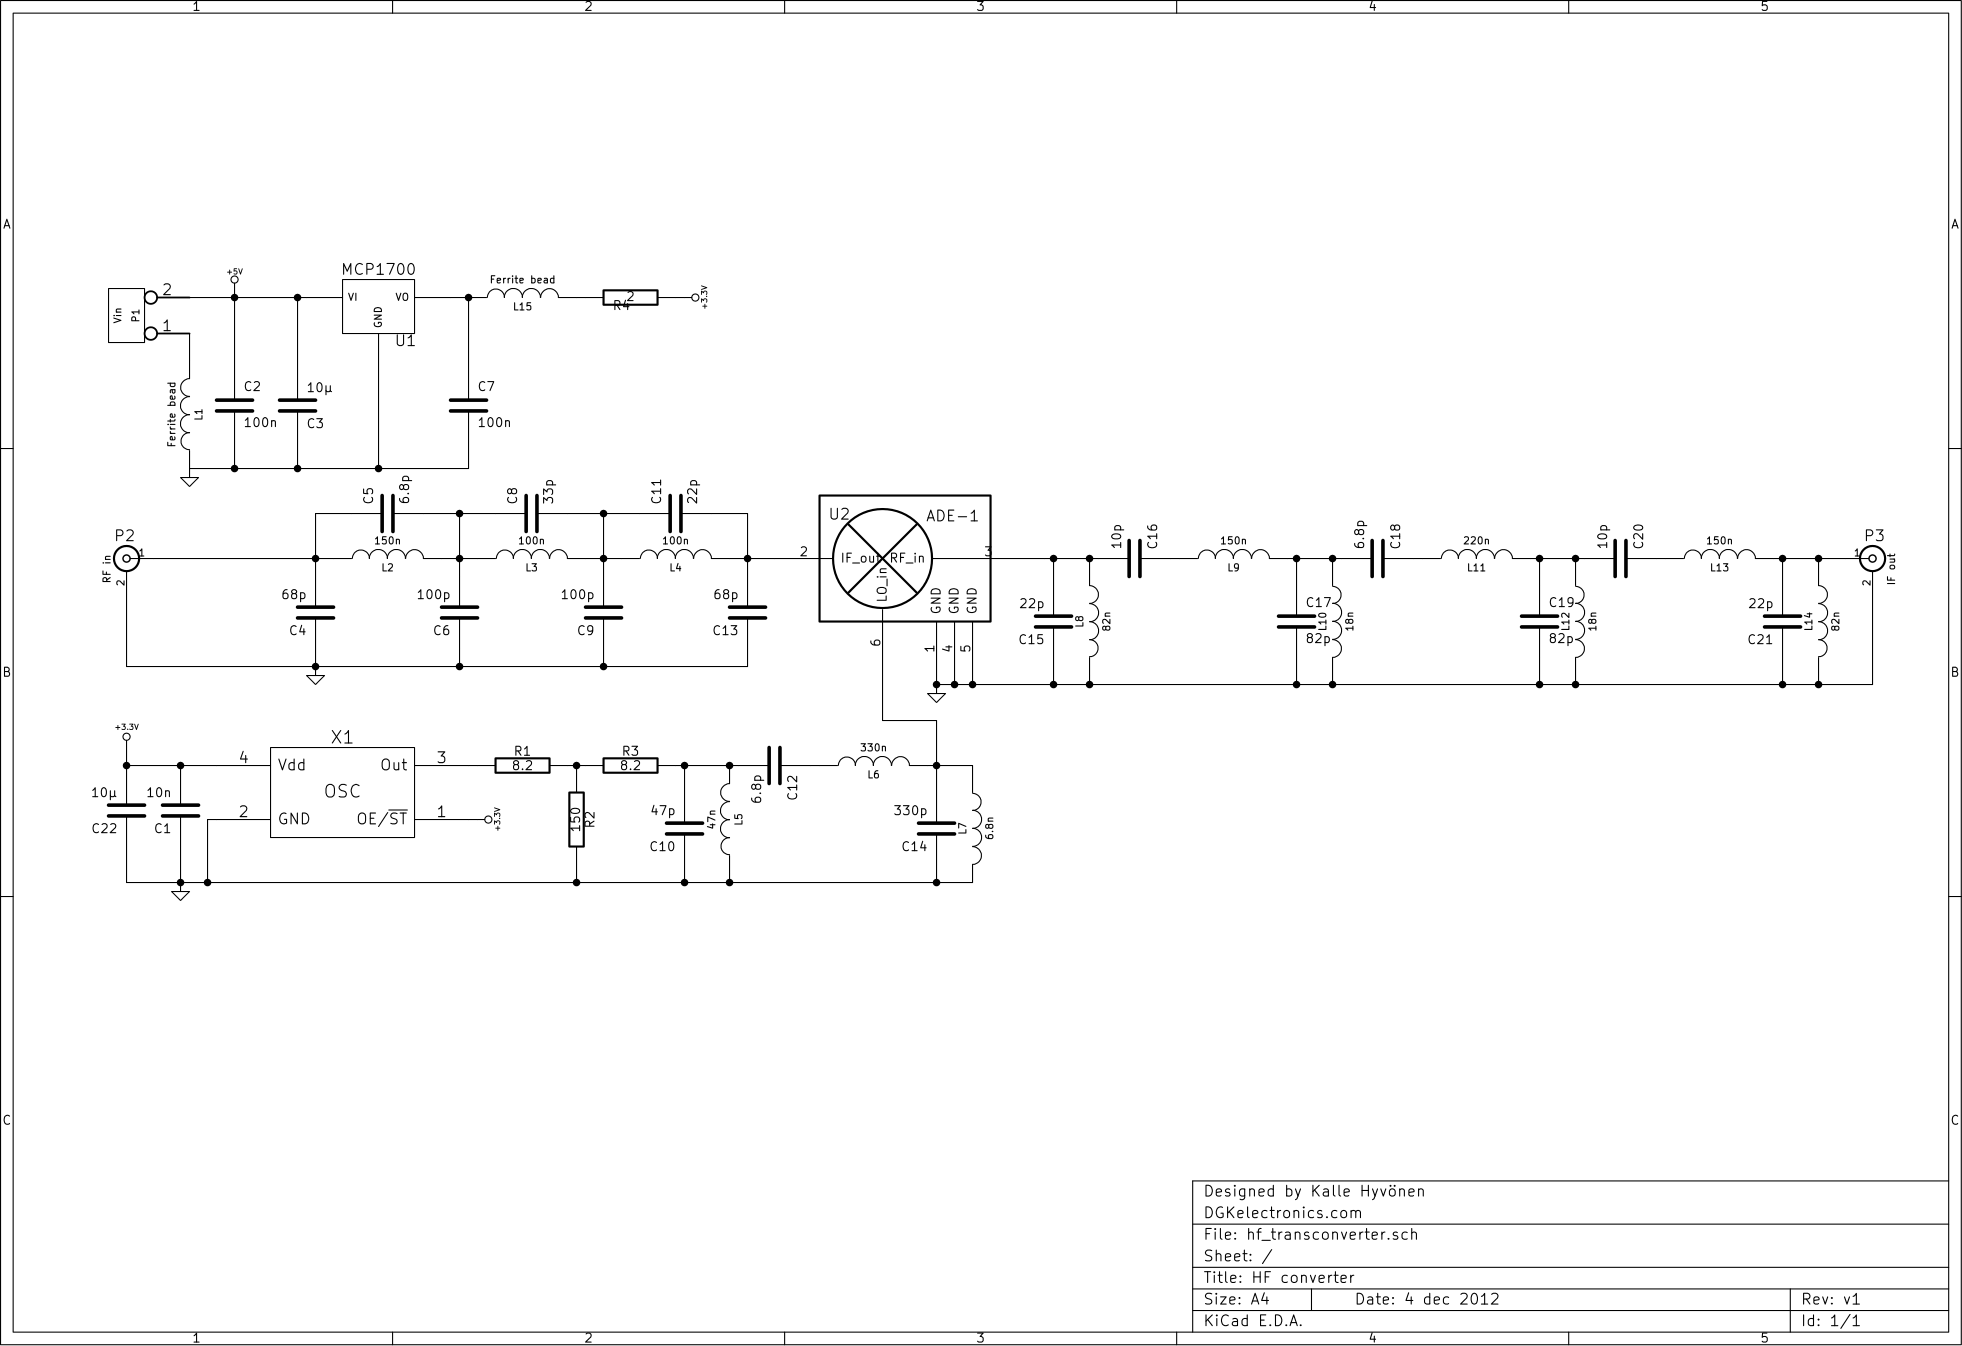 rtl sdr schematic with Hf Converter For Sdr Radios on Kenwood Ts 2000 1st If Tap For Panadapter moreover Review as well Beaglebone Black Block Diagram together with Doorbell Circuit Diagram additionally Schematic For.